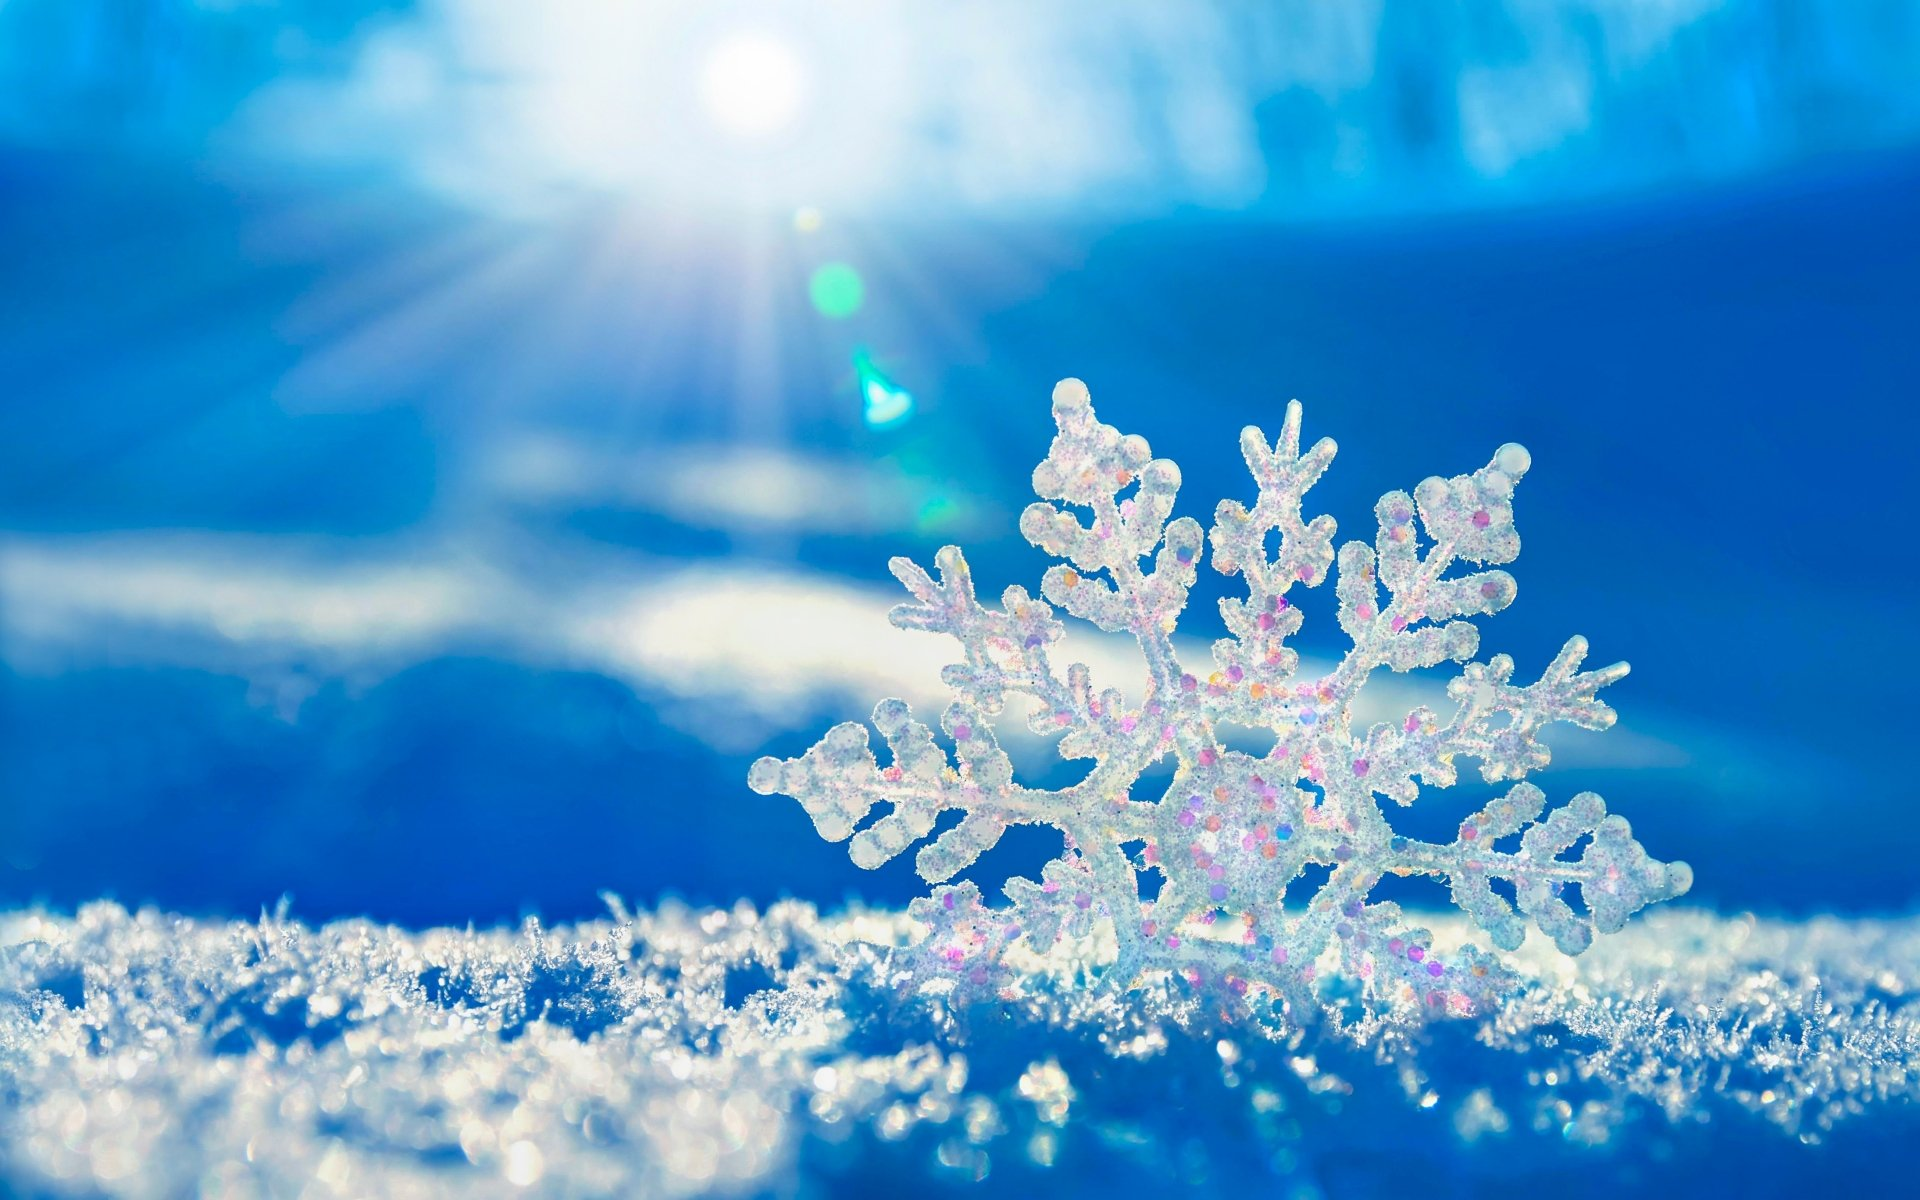 Earth - Winter  Snowflake Snow Nature Wallpaper